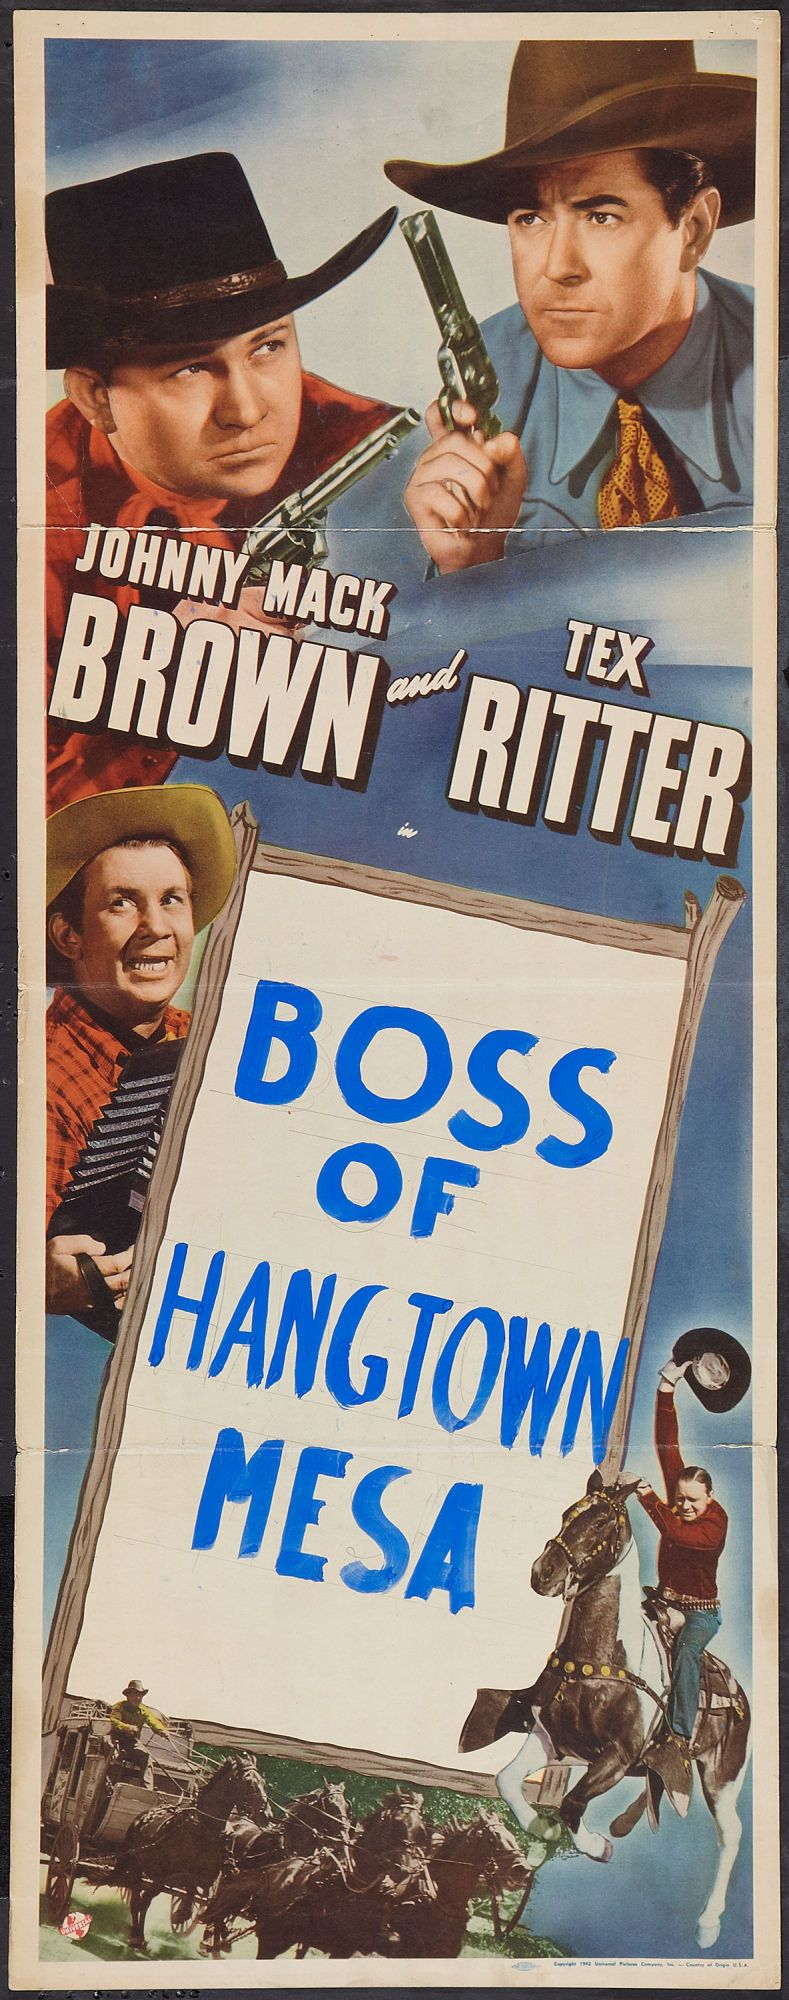 Download Boss of Hangtown Mesa Full-Movie Free